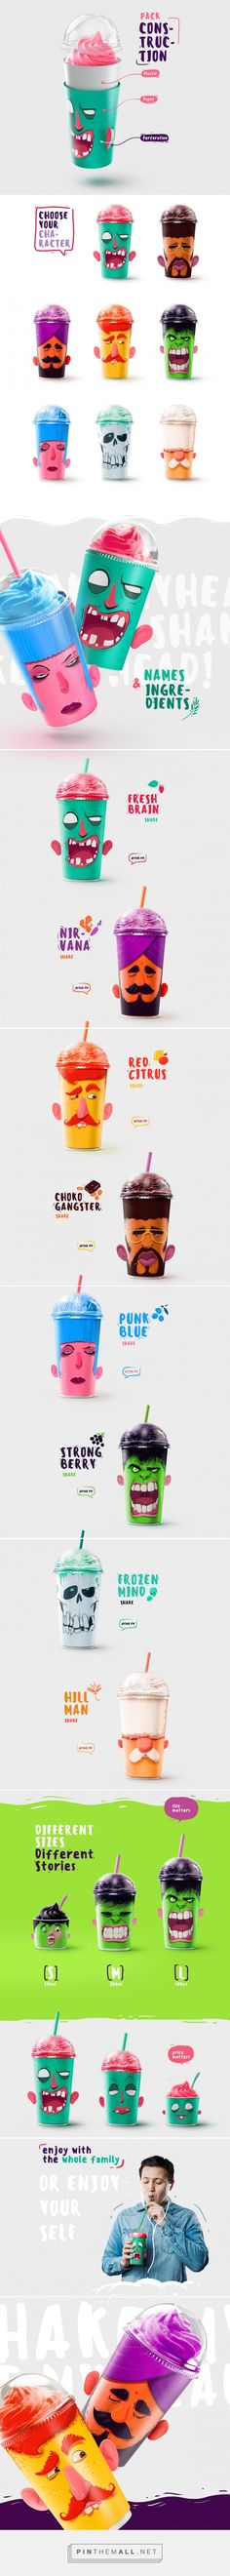 Fun! Shake My Head Milkshakes packaging design by Rustam Usmanov (Russia) - http://www.packagingoftheworld.com/2016/06/shake-my-head-milkshakes.html